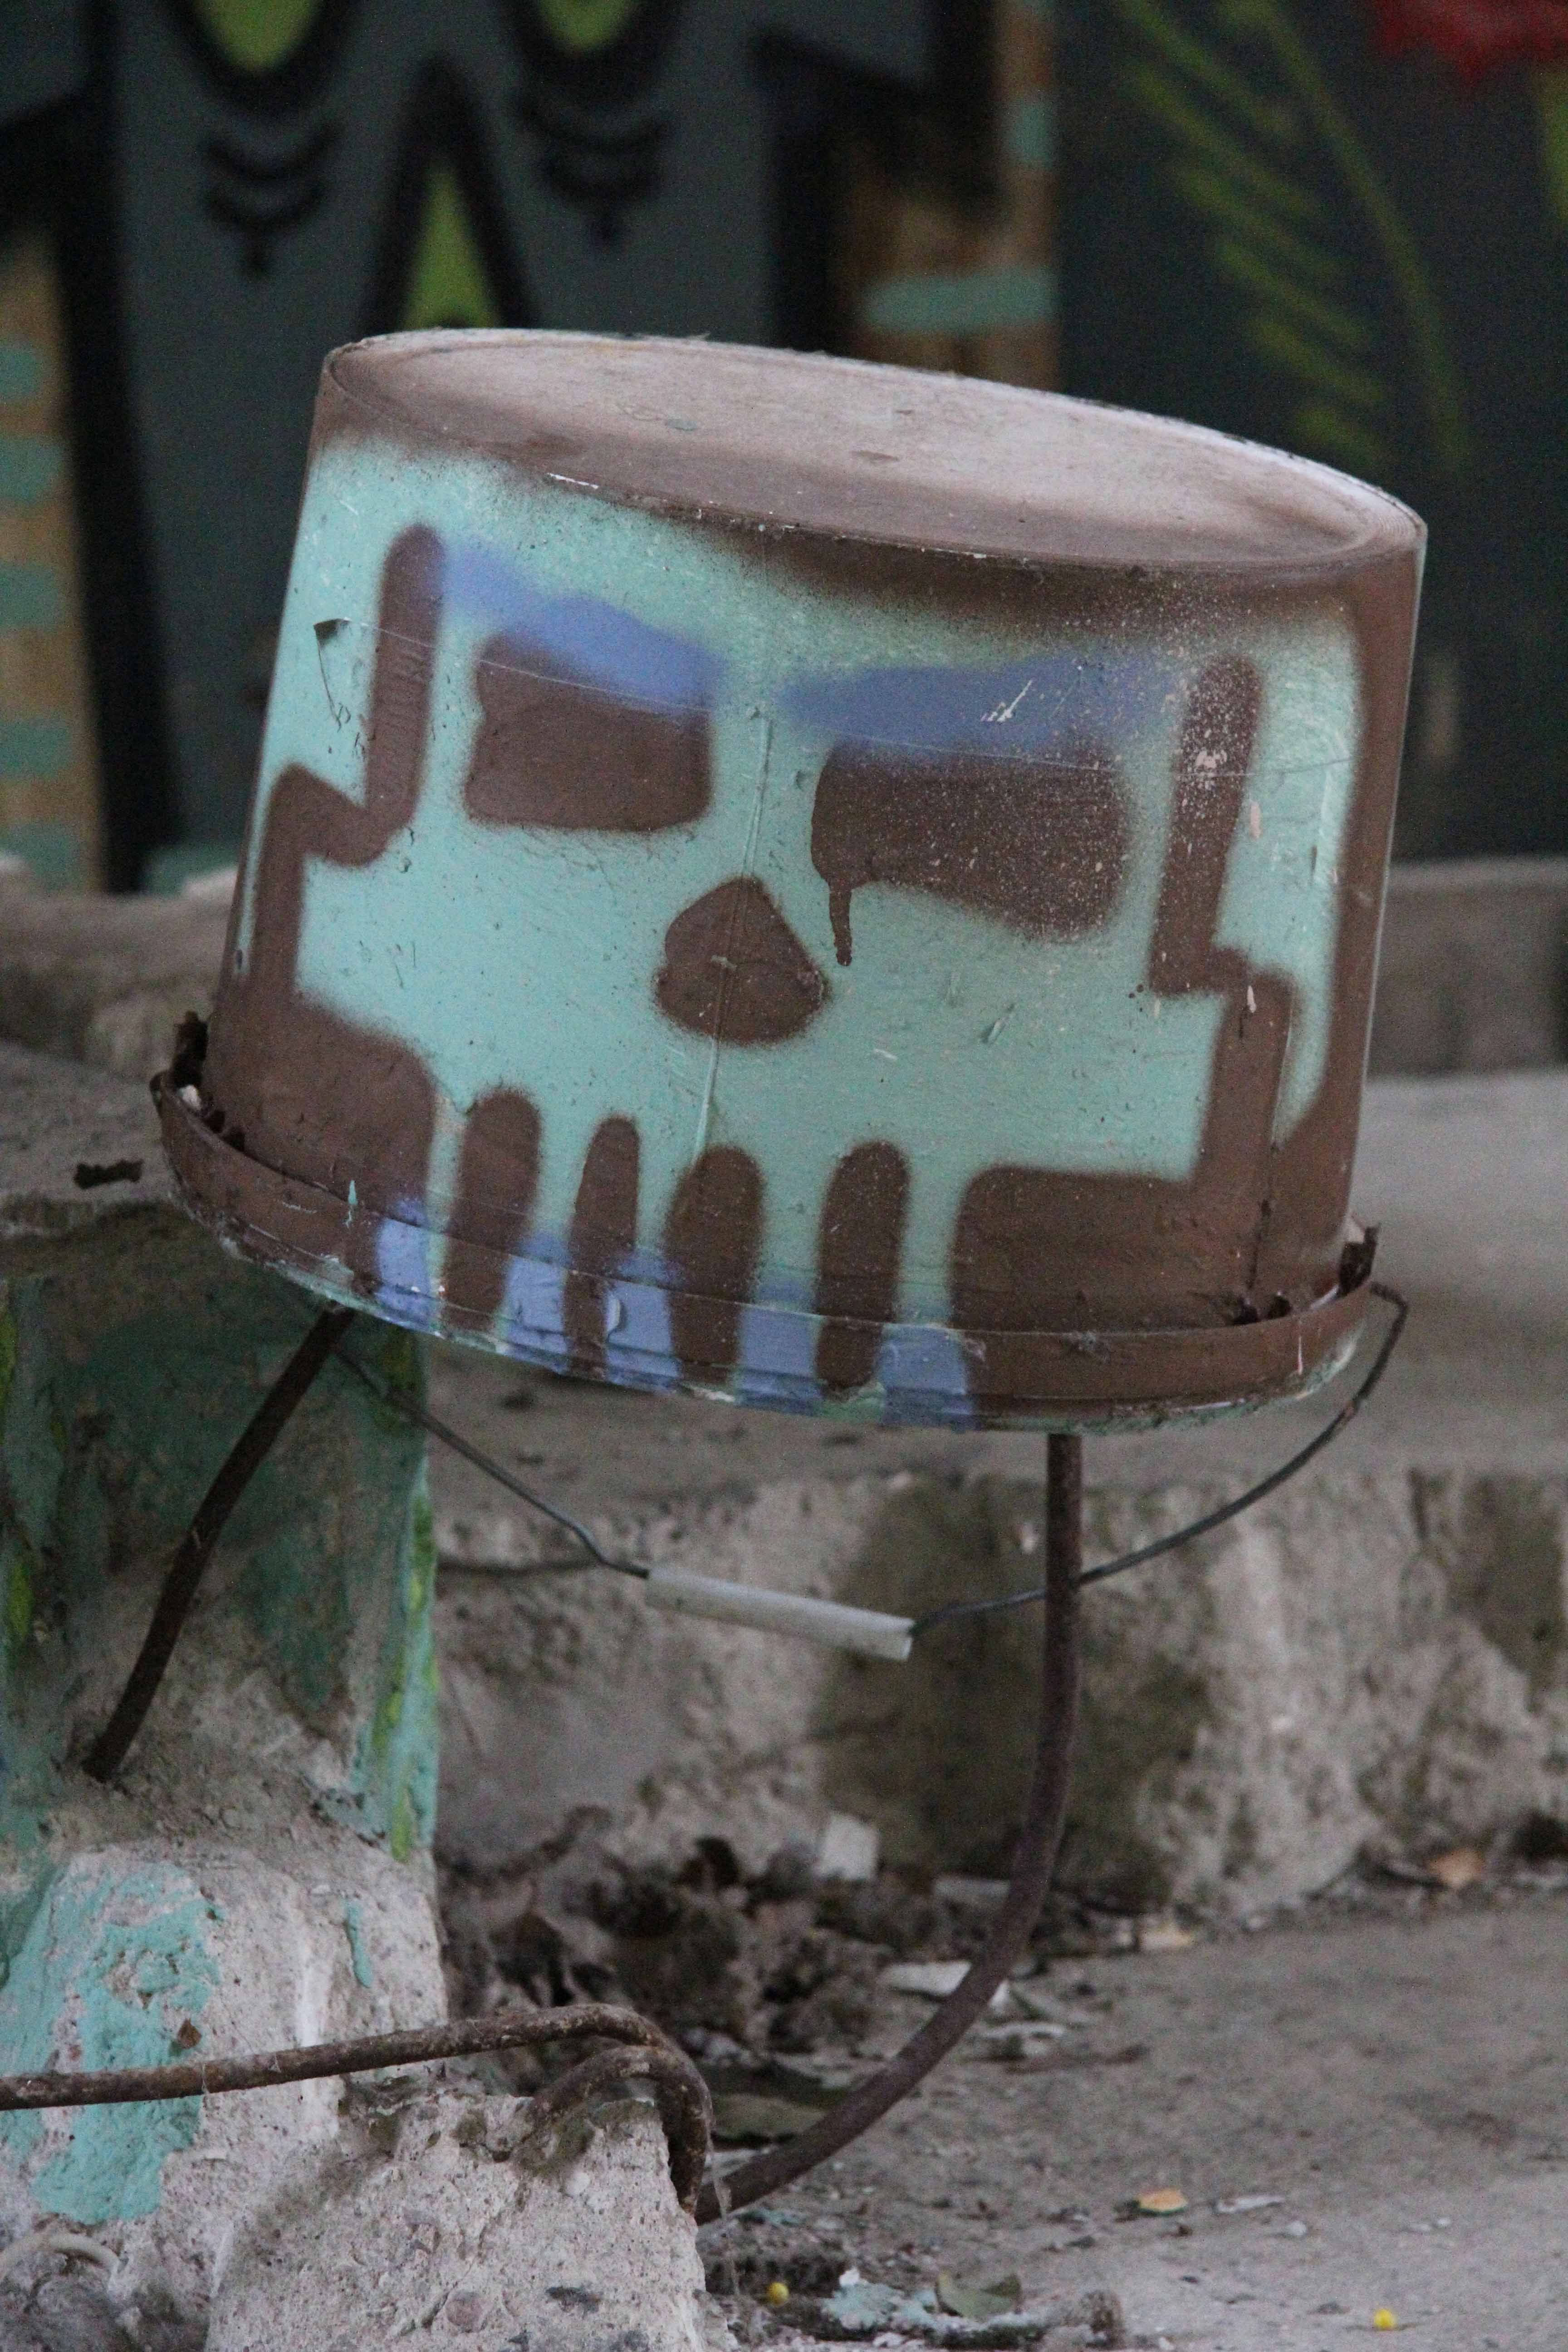 Bucket Skull: Street Art by Unknown Artist at Papierfabrik Wolfswinkel near Berlin